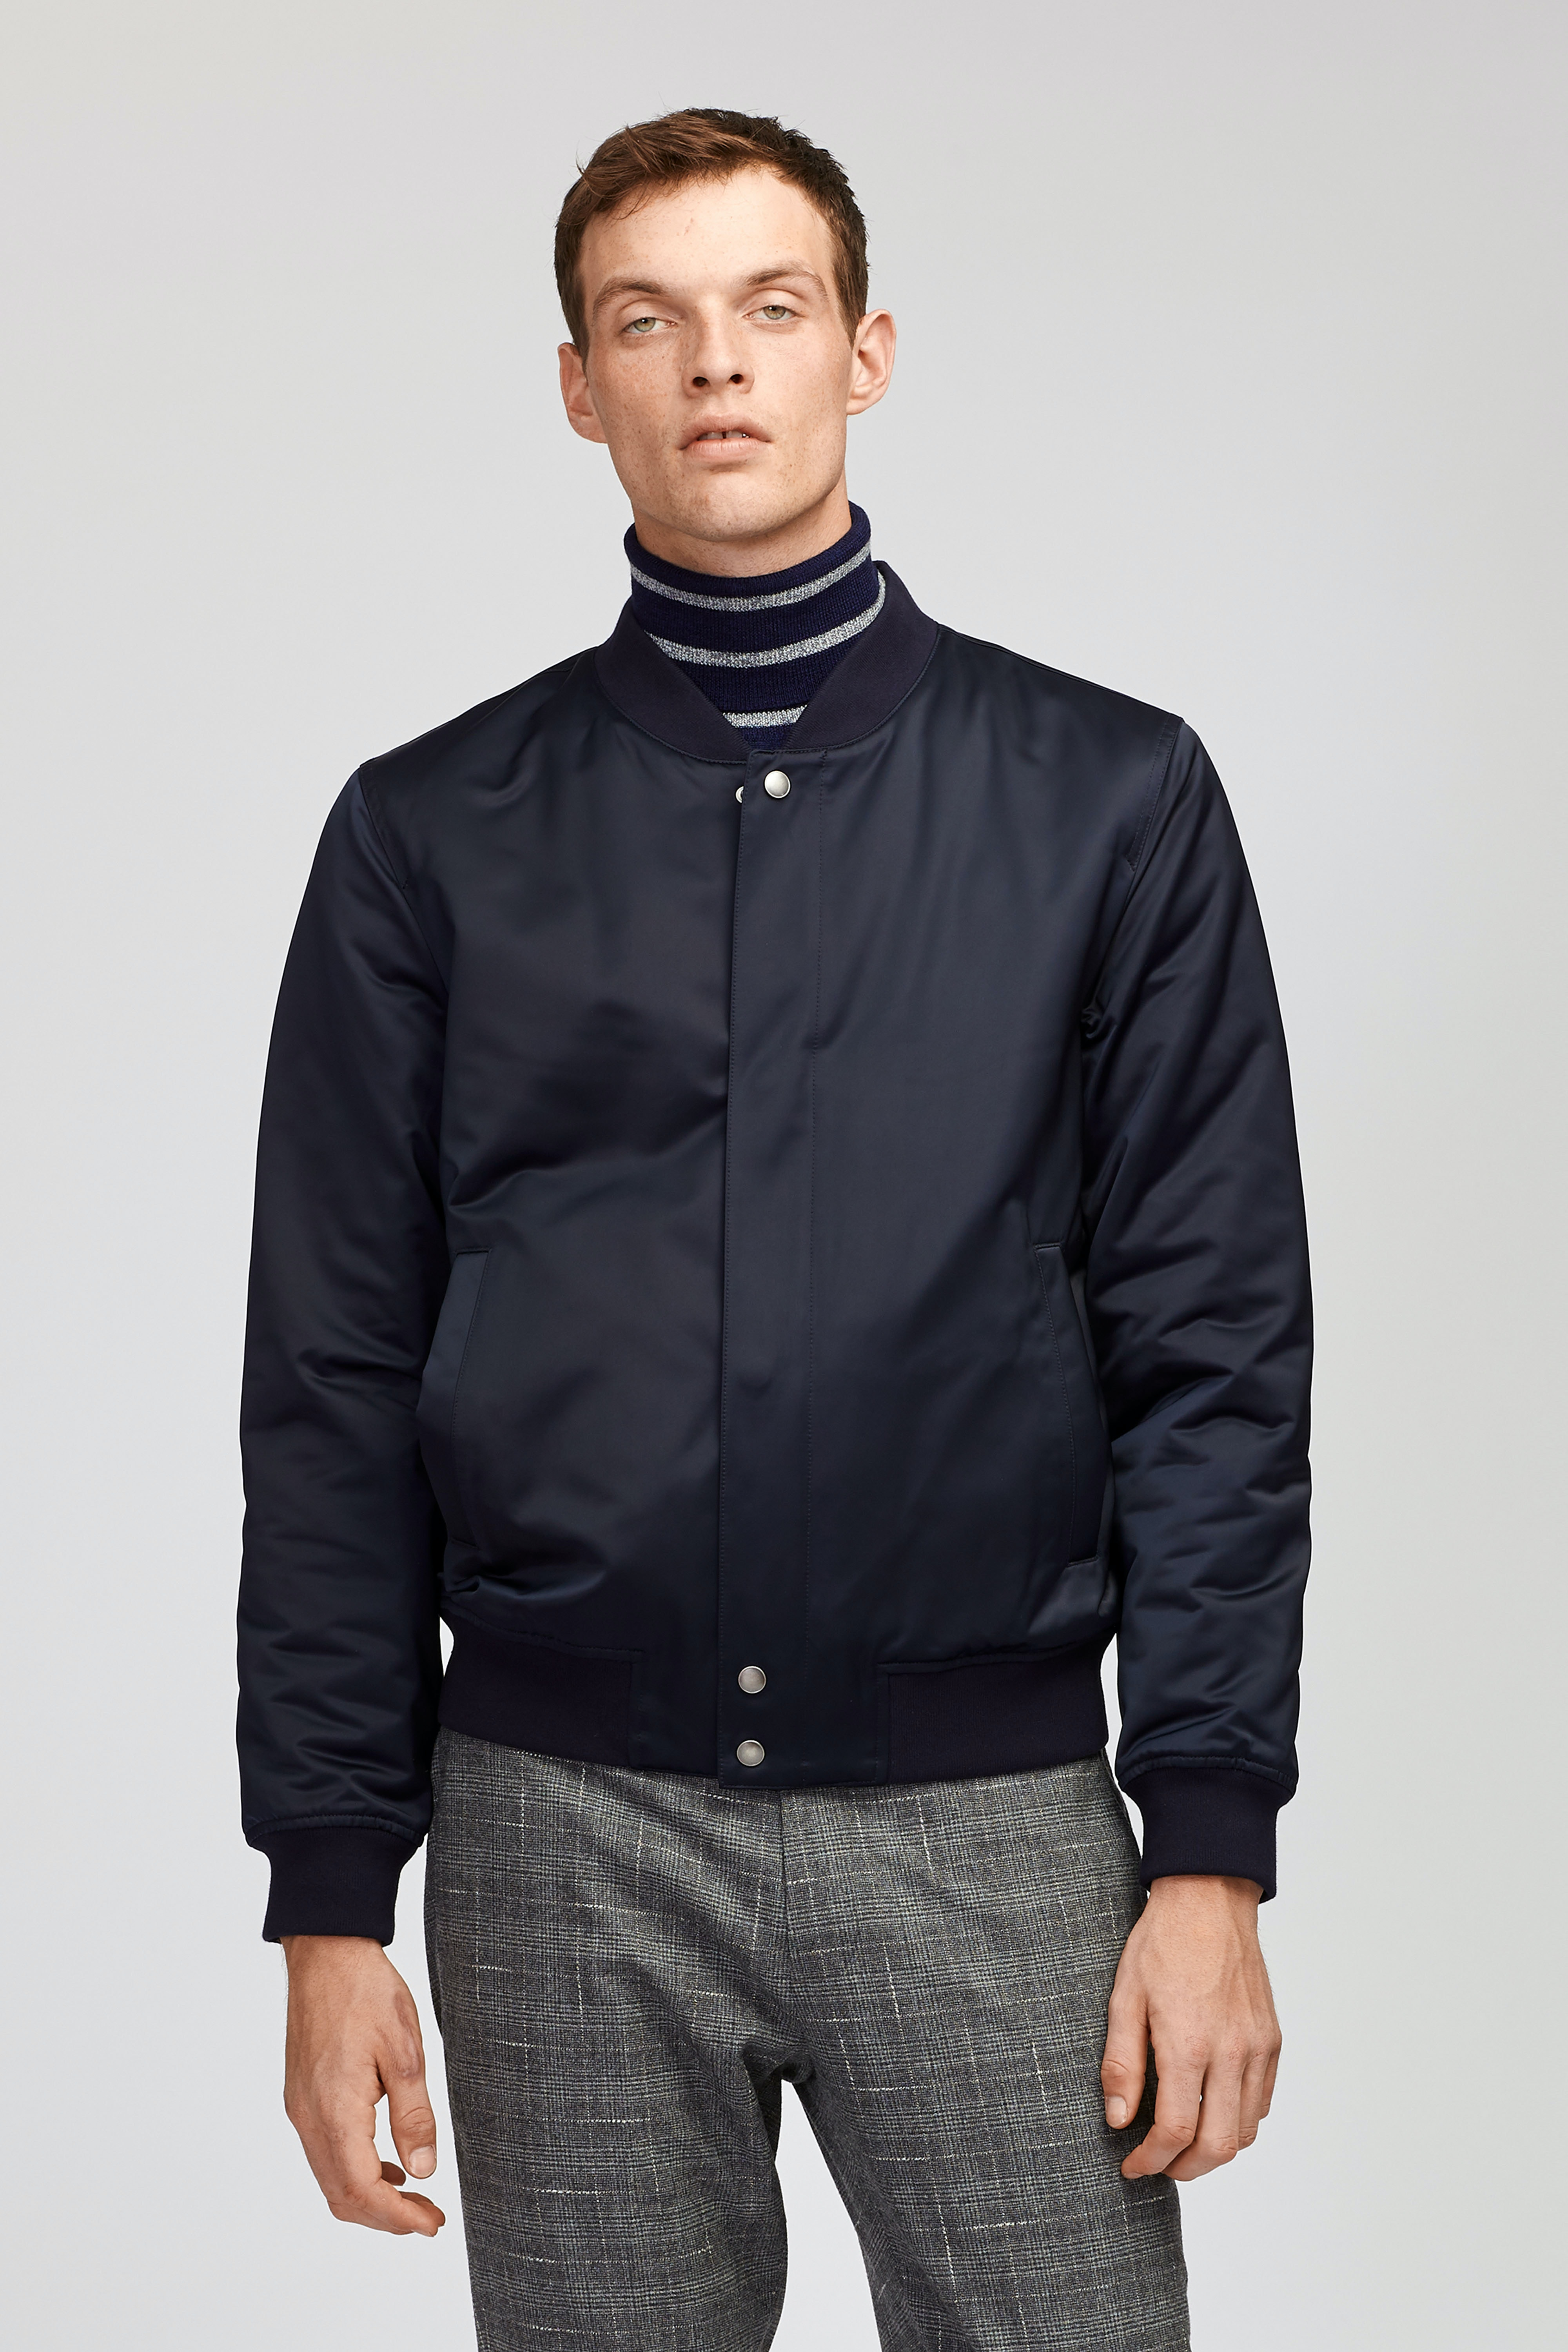 The Quilted Boulevard Bomber Jacket